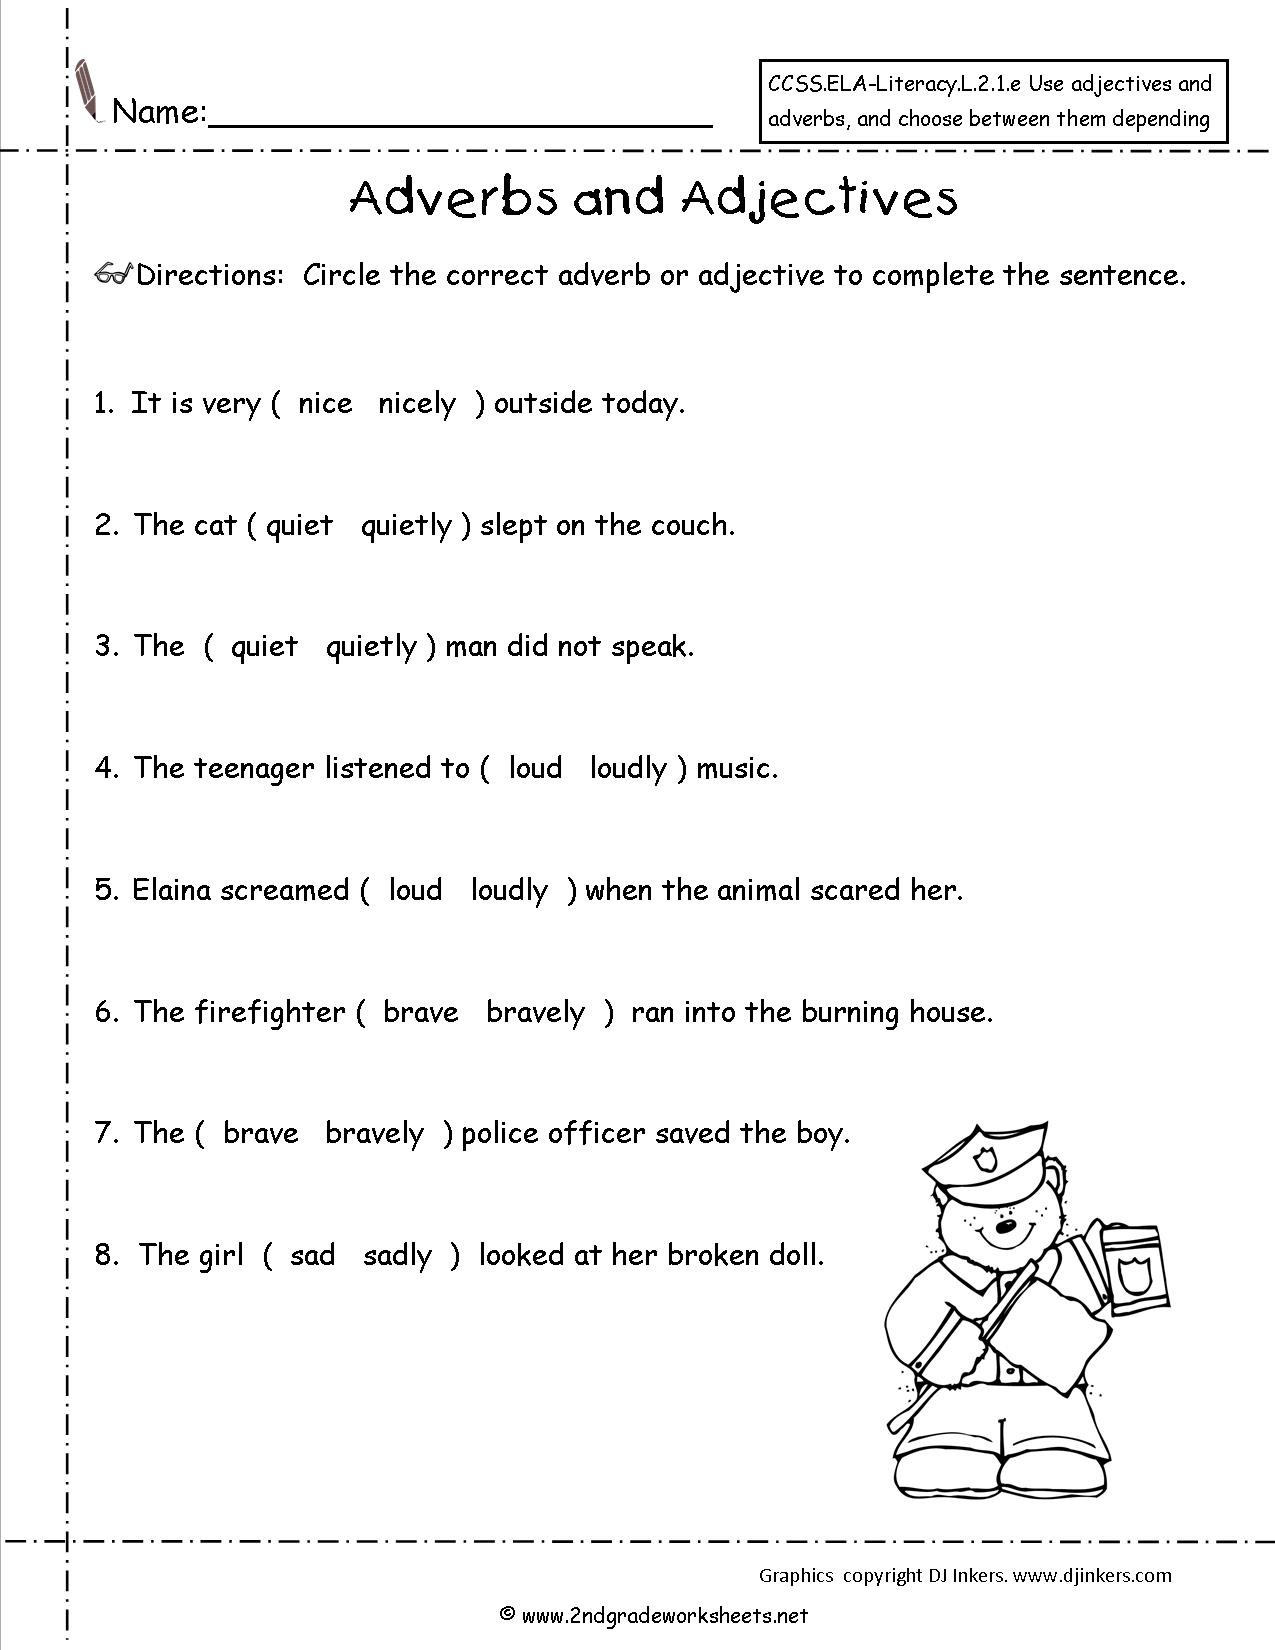 4th Grade Adverb Worksheets Math topics by Grade Birthday themed Coloring Pages